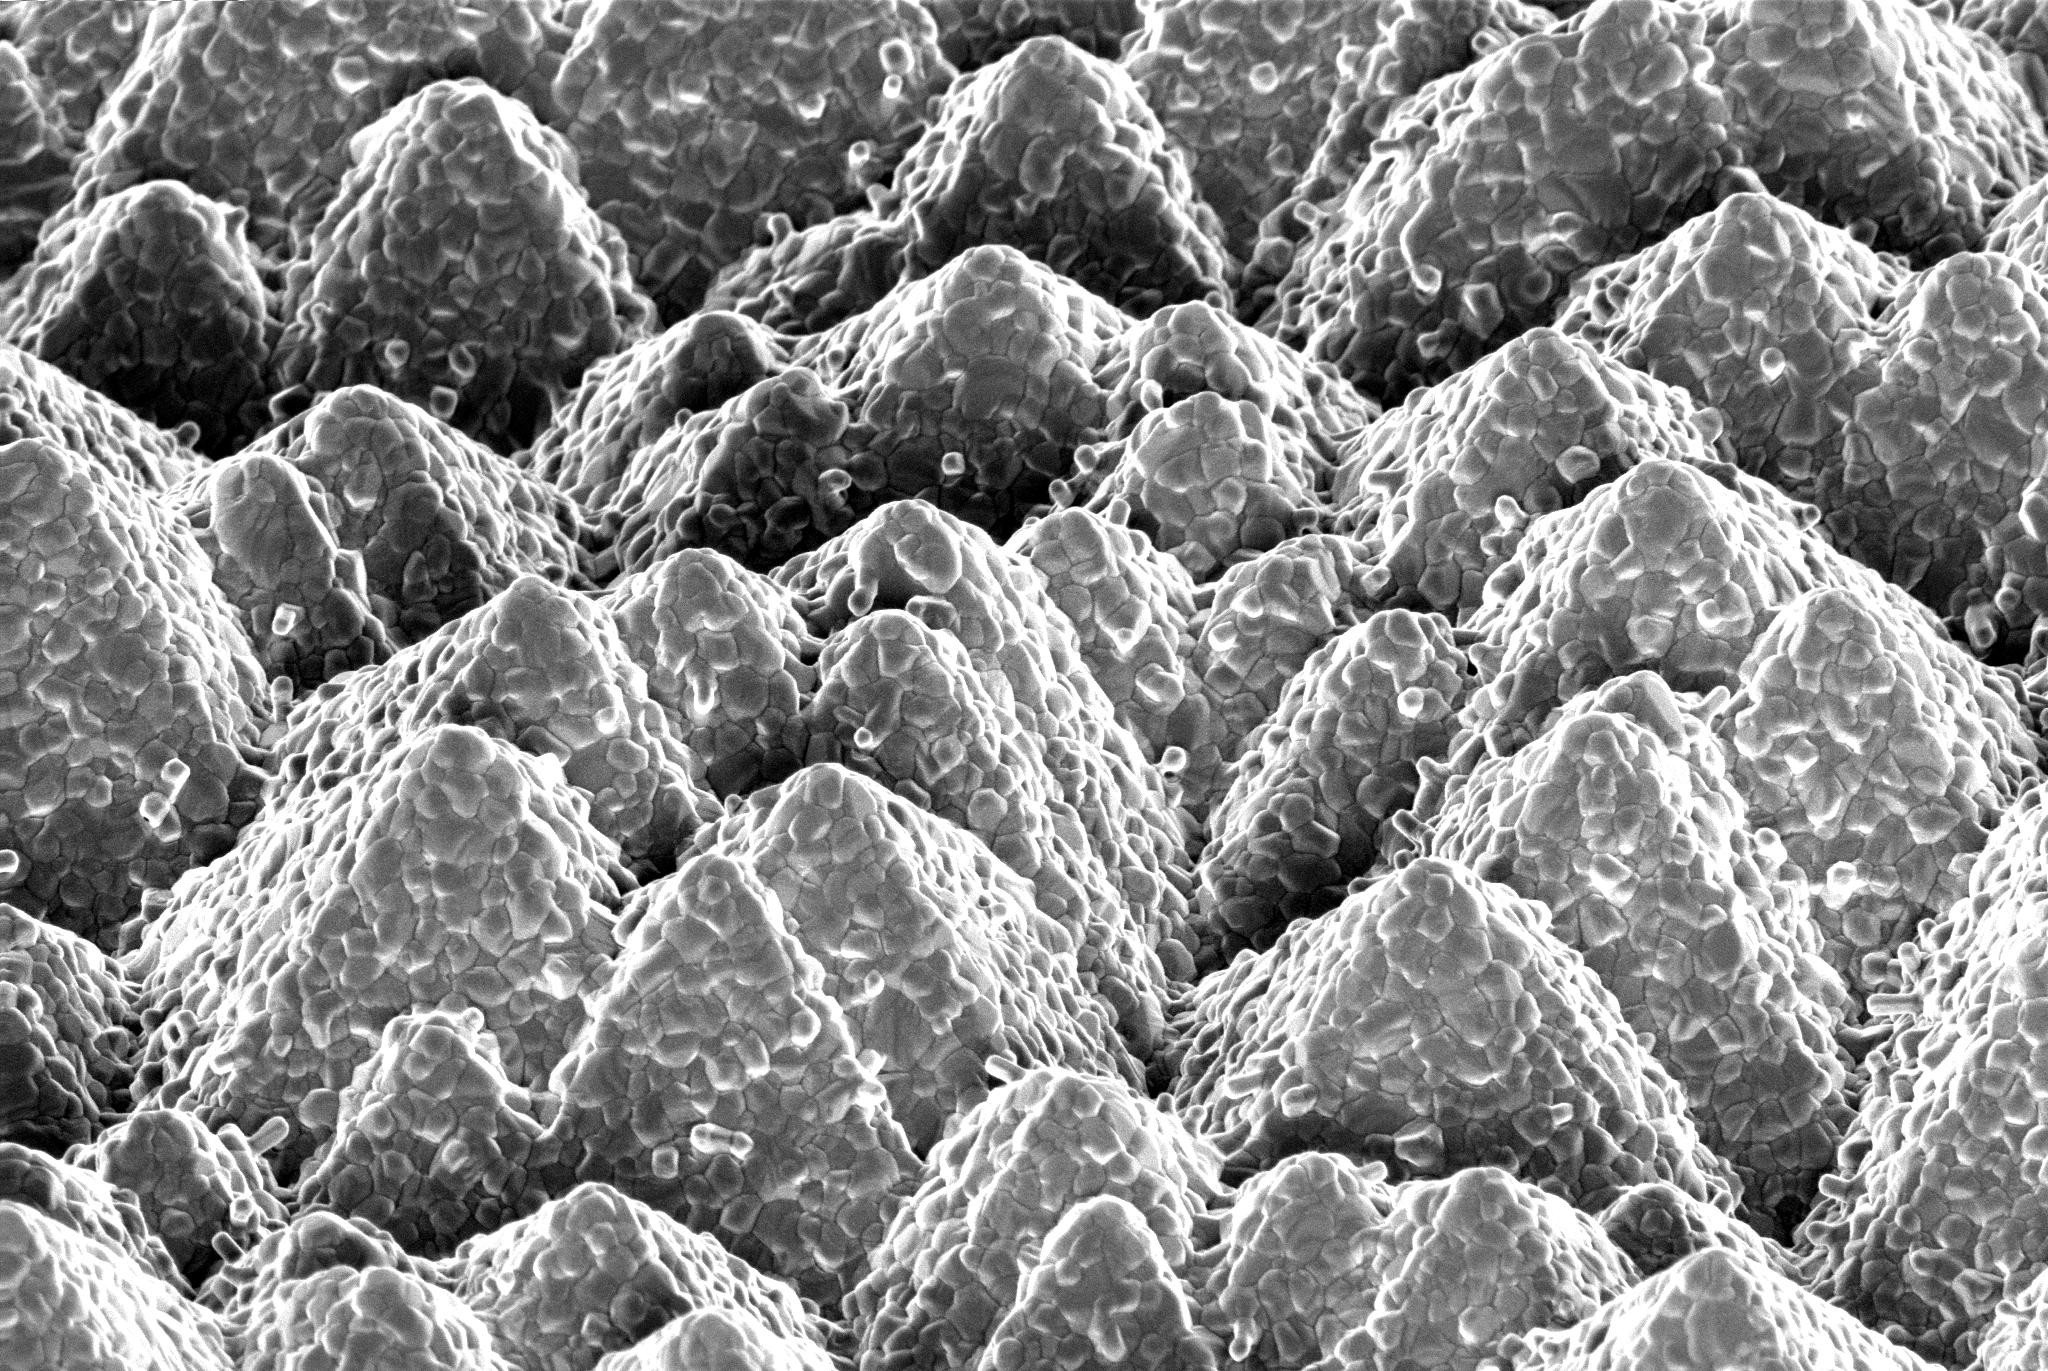 Using an evaporation method to form an inorganic porous base layer that fully covers the pyramids was developed, enabling it to retain the liquid organic solution that is then added via spin-coating. Image: EPFL and CSEM